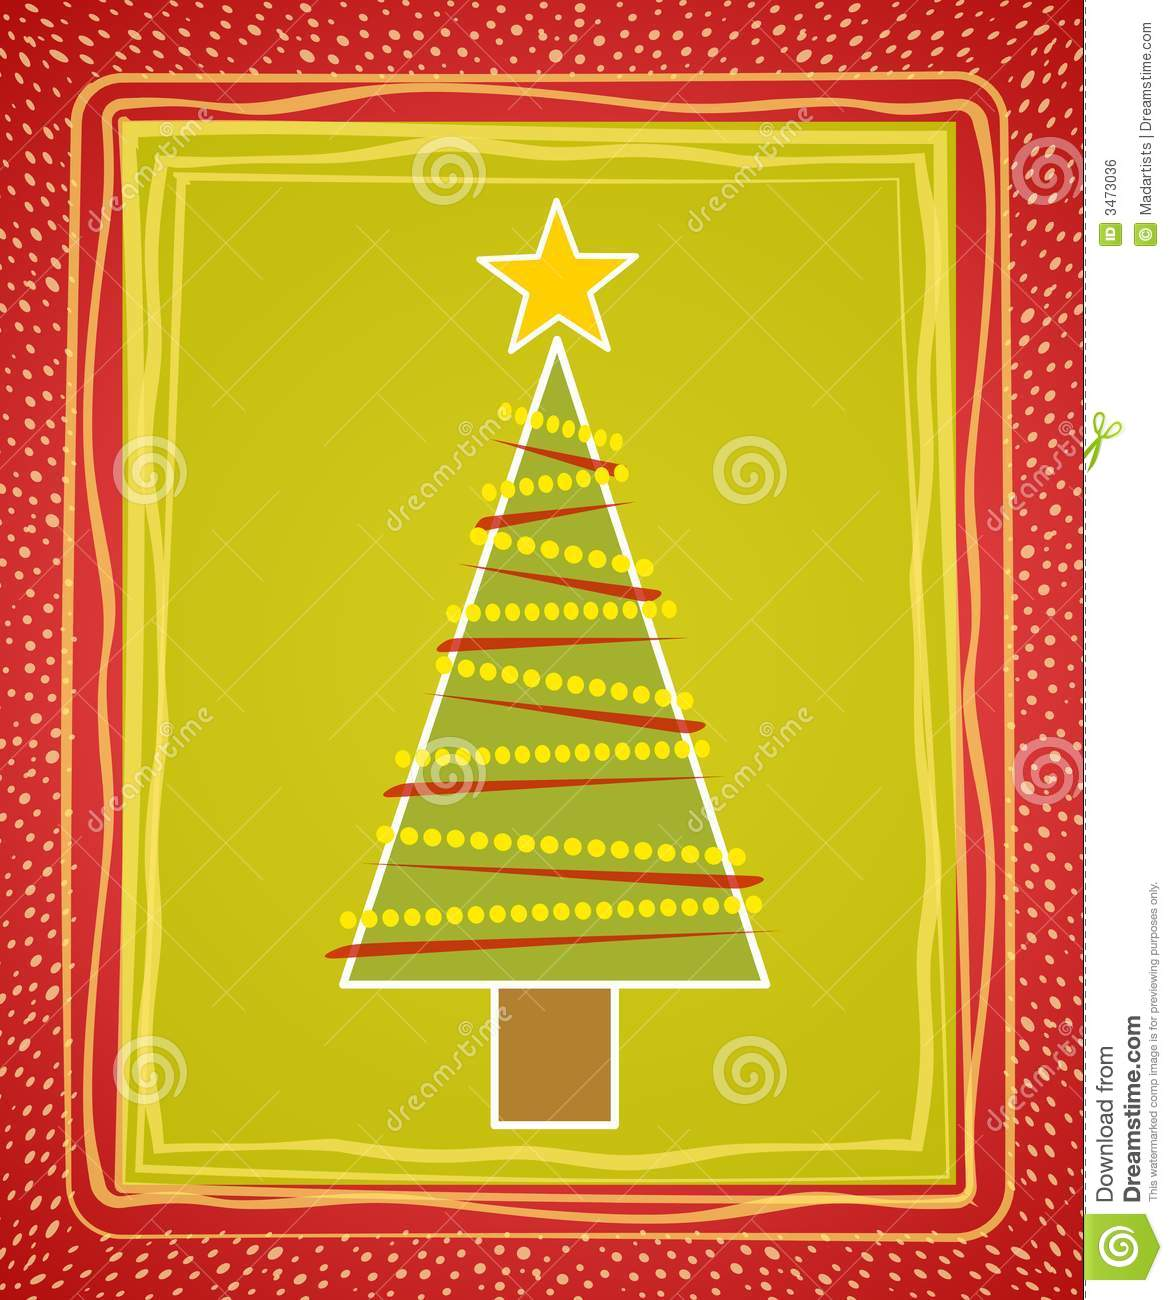 art card christmas clip illustration tree - Christmas Tree Card